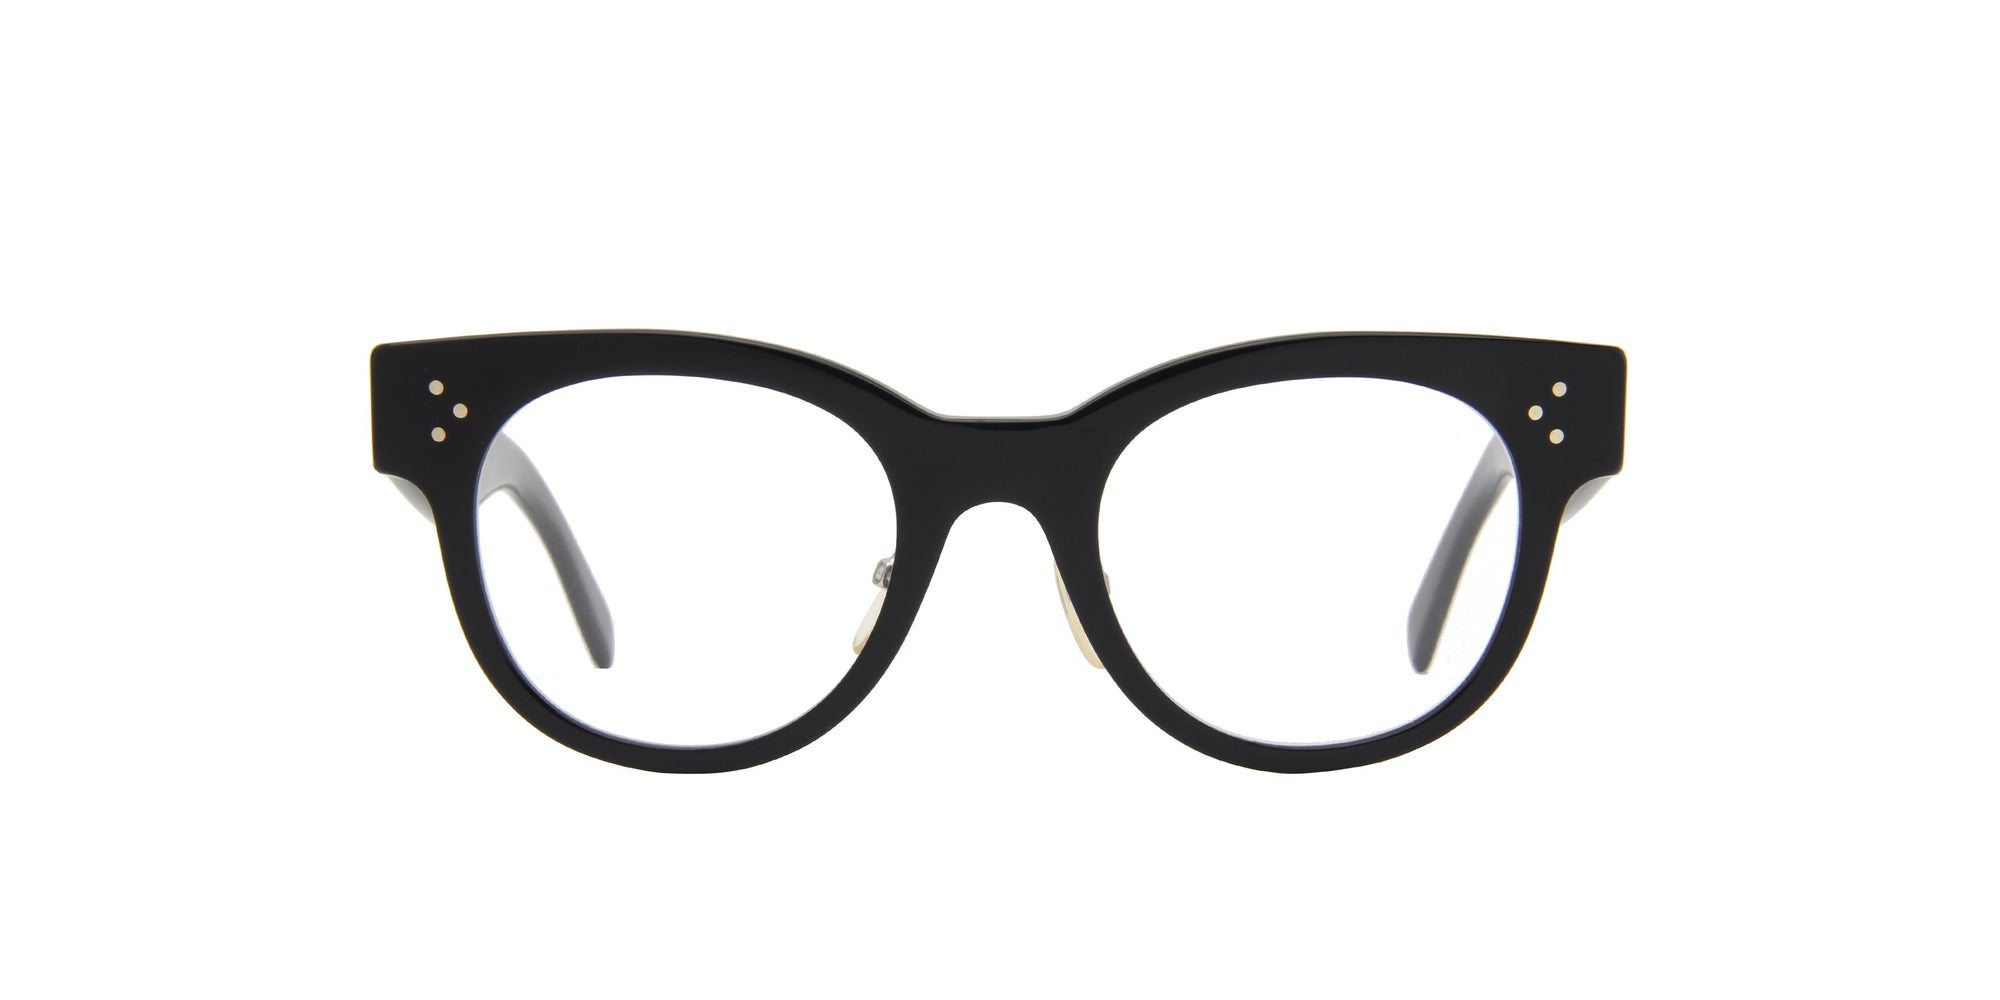 Celine - CL41427 Black Oval Women Eyeglasses - 48mm-Eyeglasses-Designer Eyes